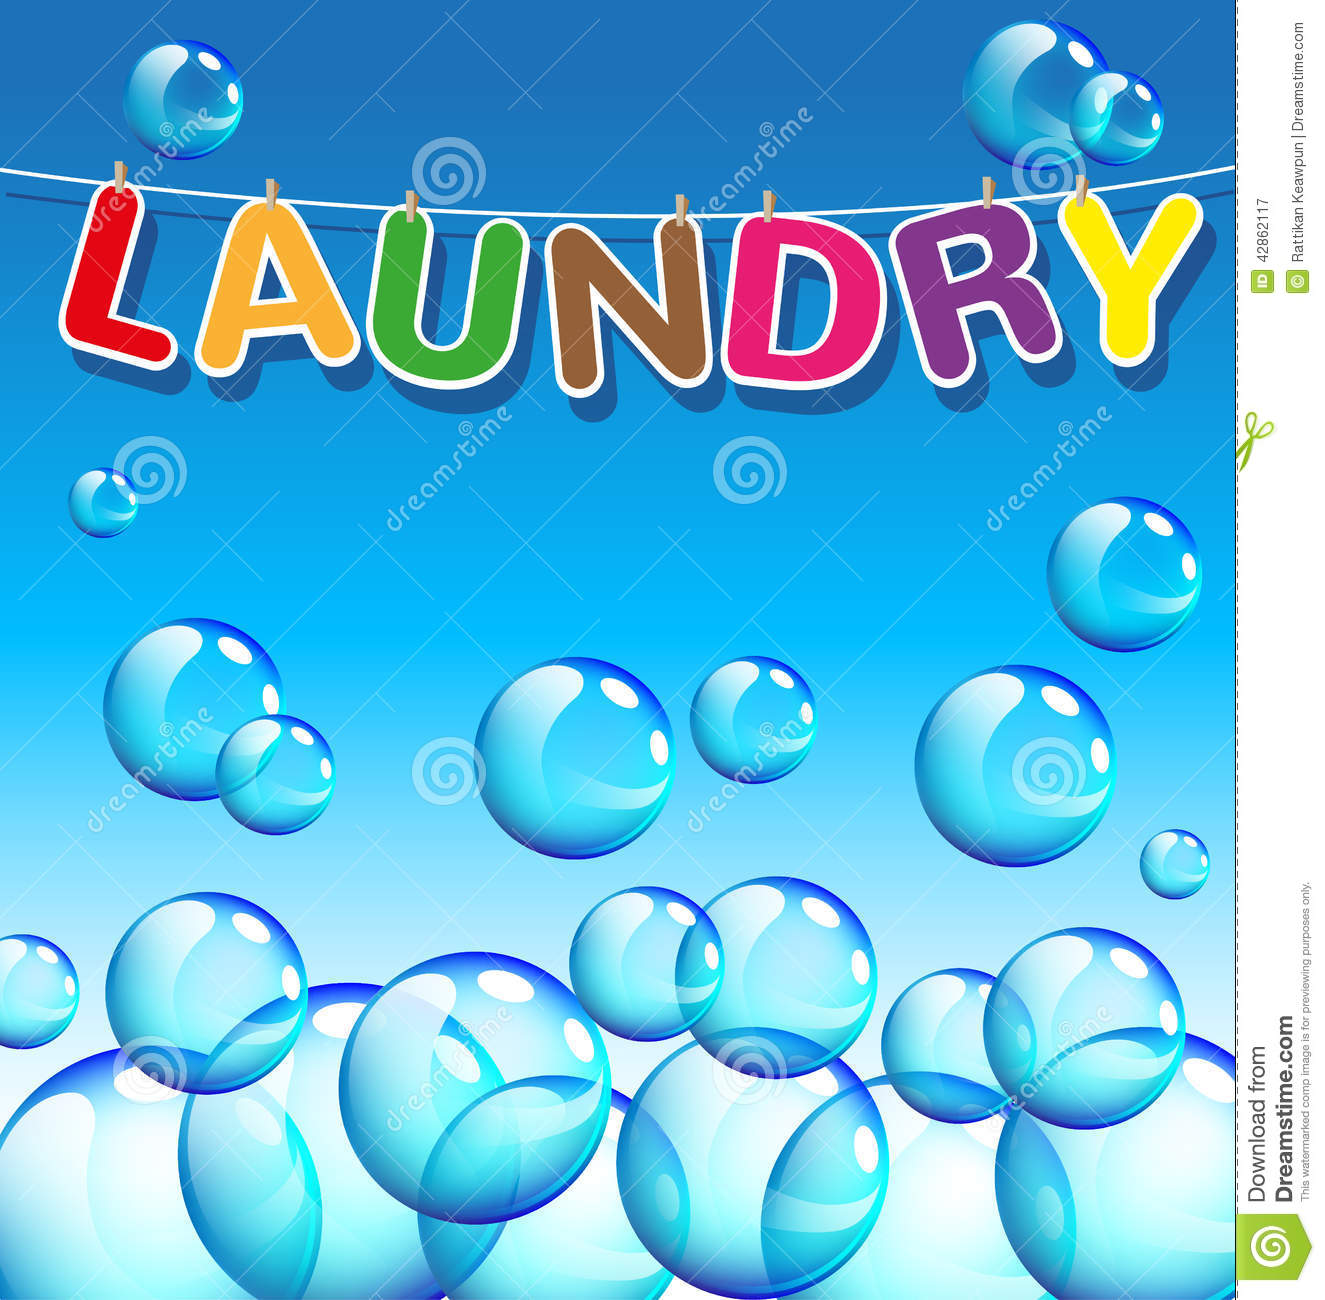 Laundry Text And Background Of Bubbles Stock Vector - Image: 42862117